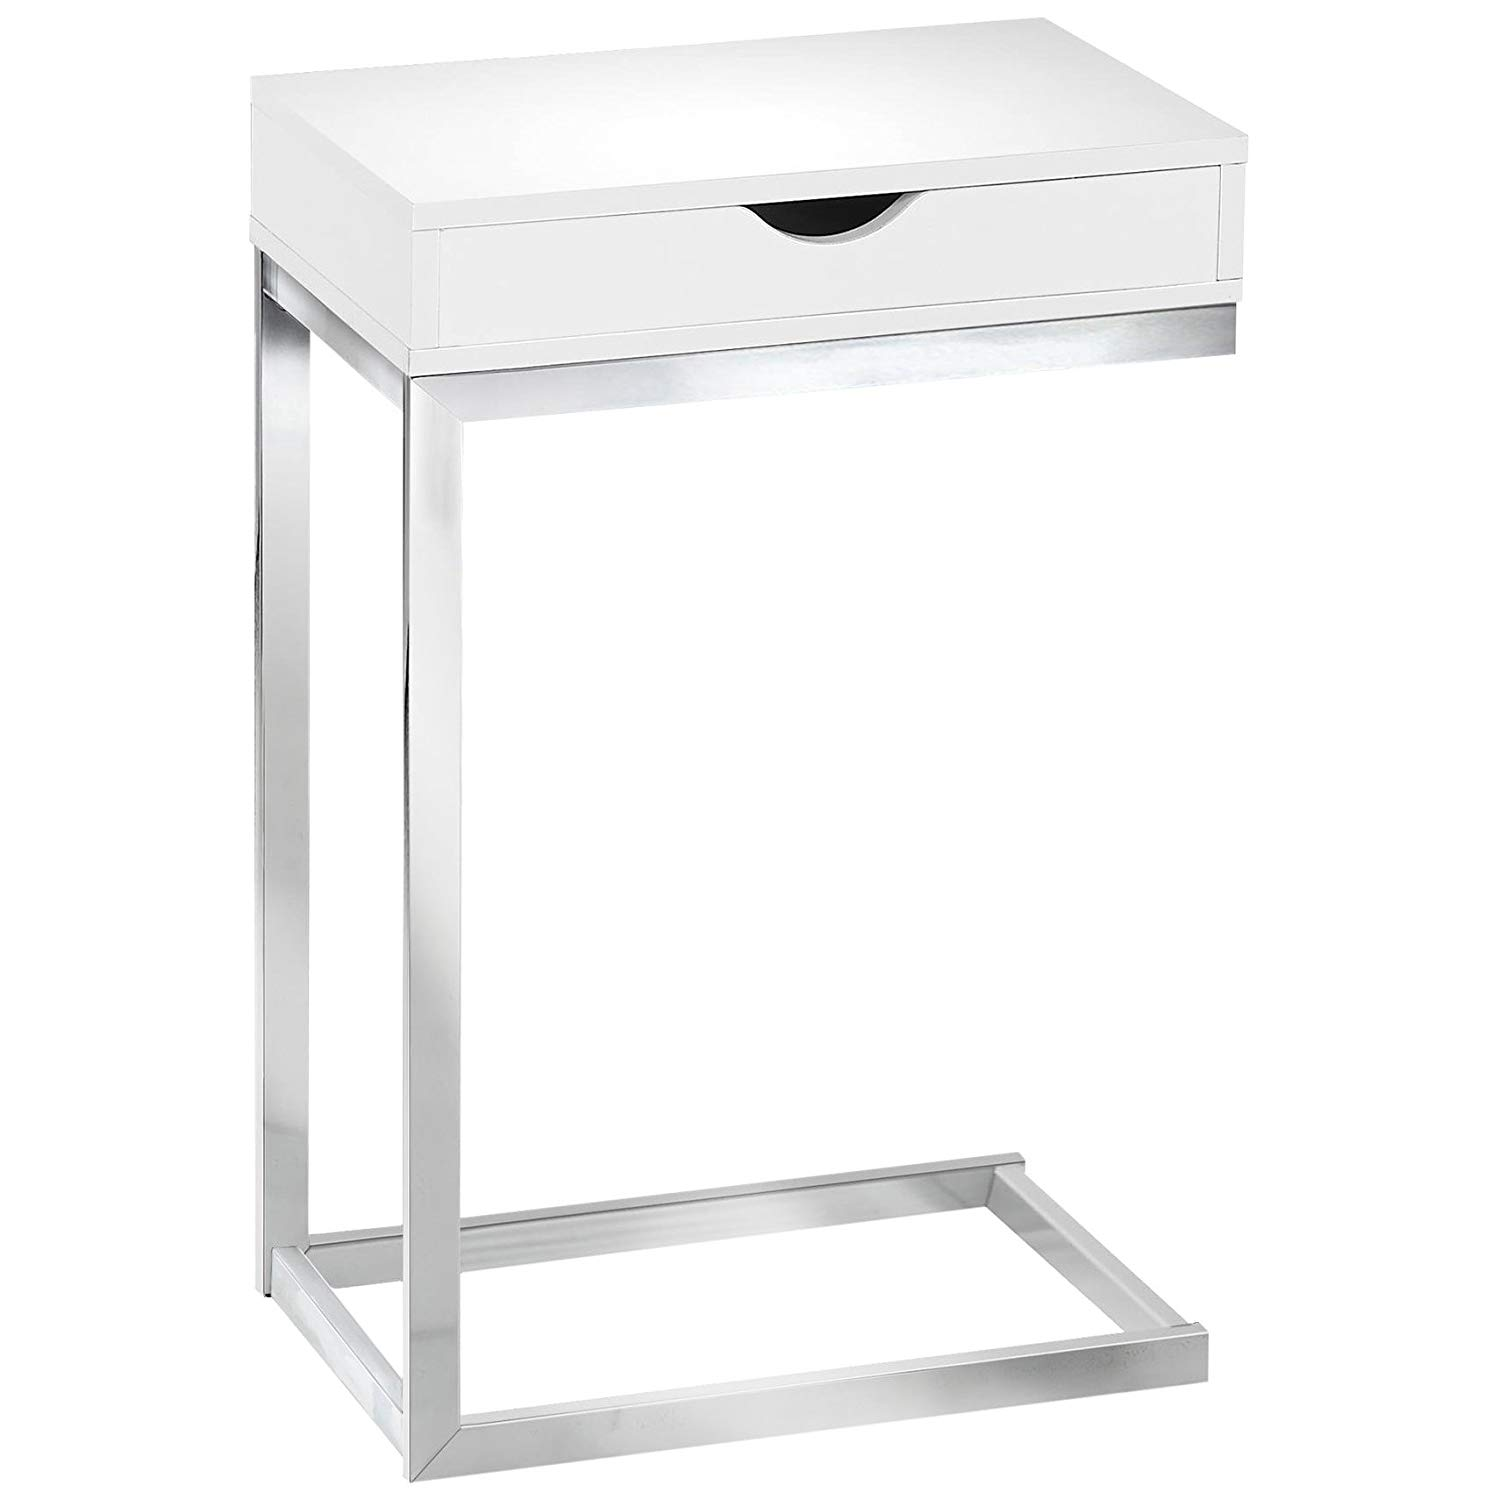 monarch specialties accent table with drawer white metal chrome glossy kitchen dining corner bench set black navy end oversized reading chair desktop computer stand vintage and